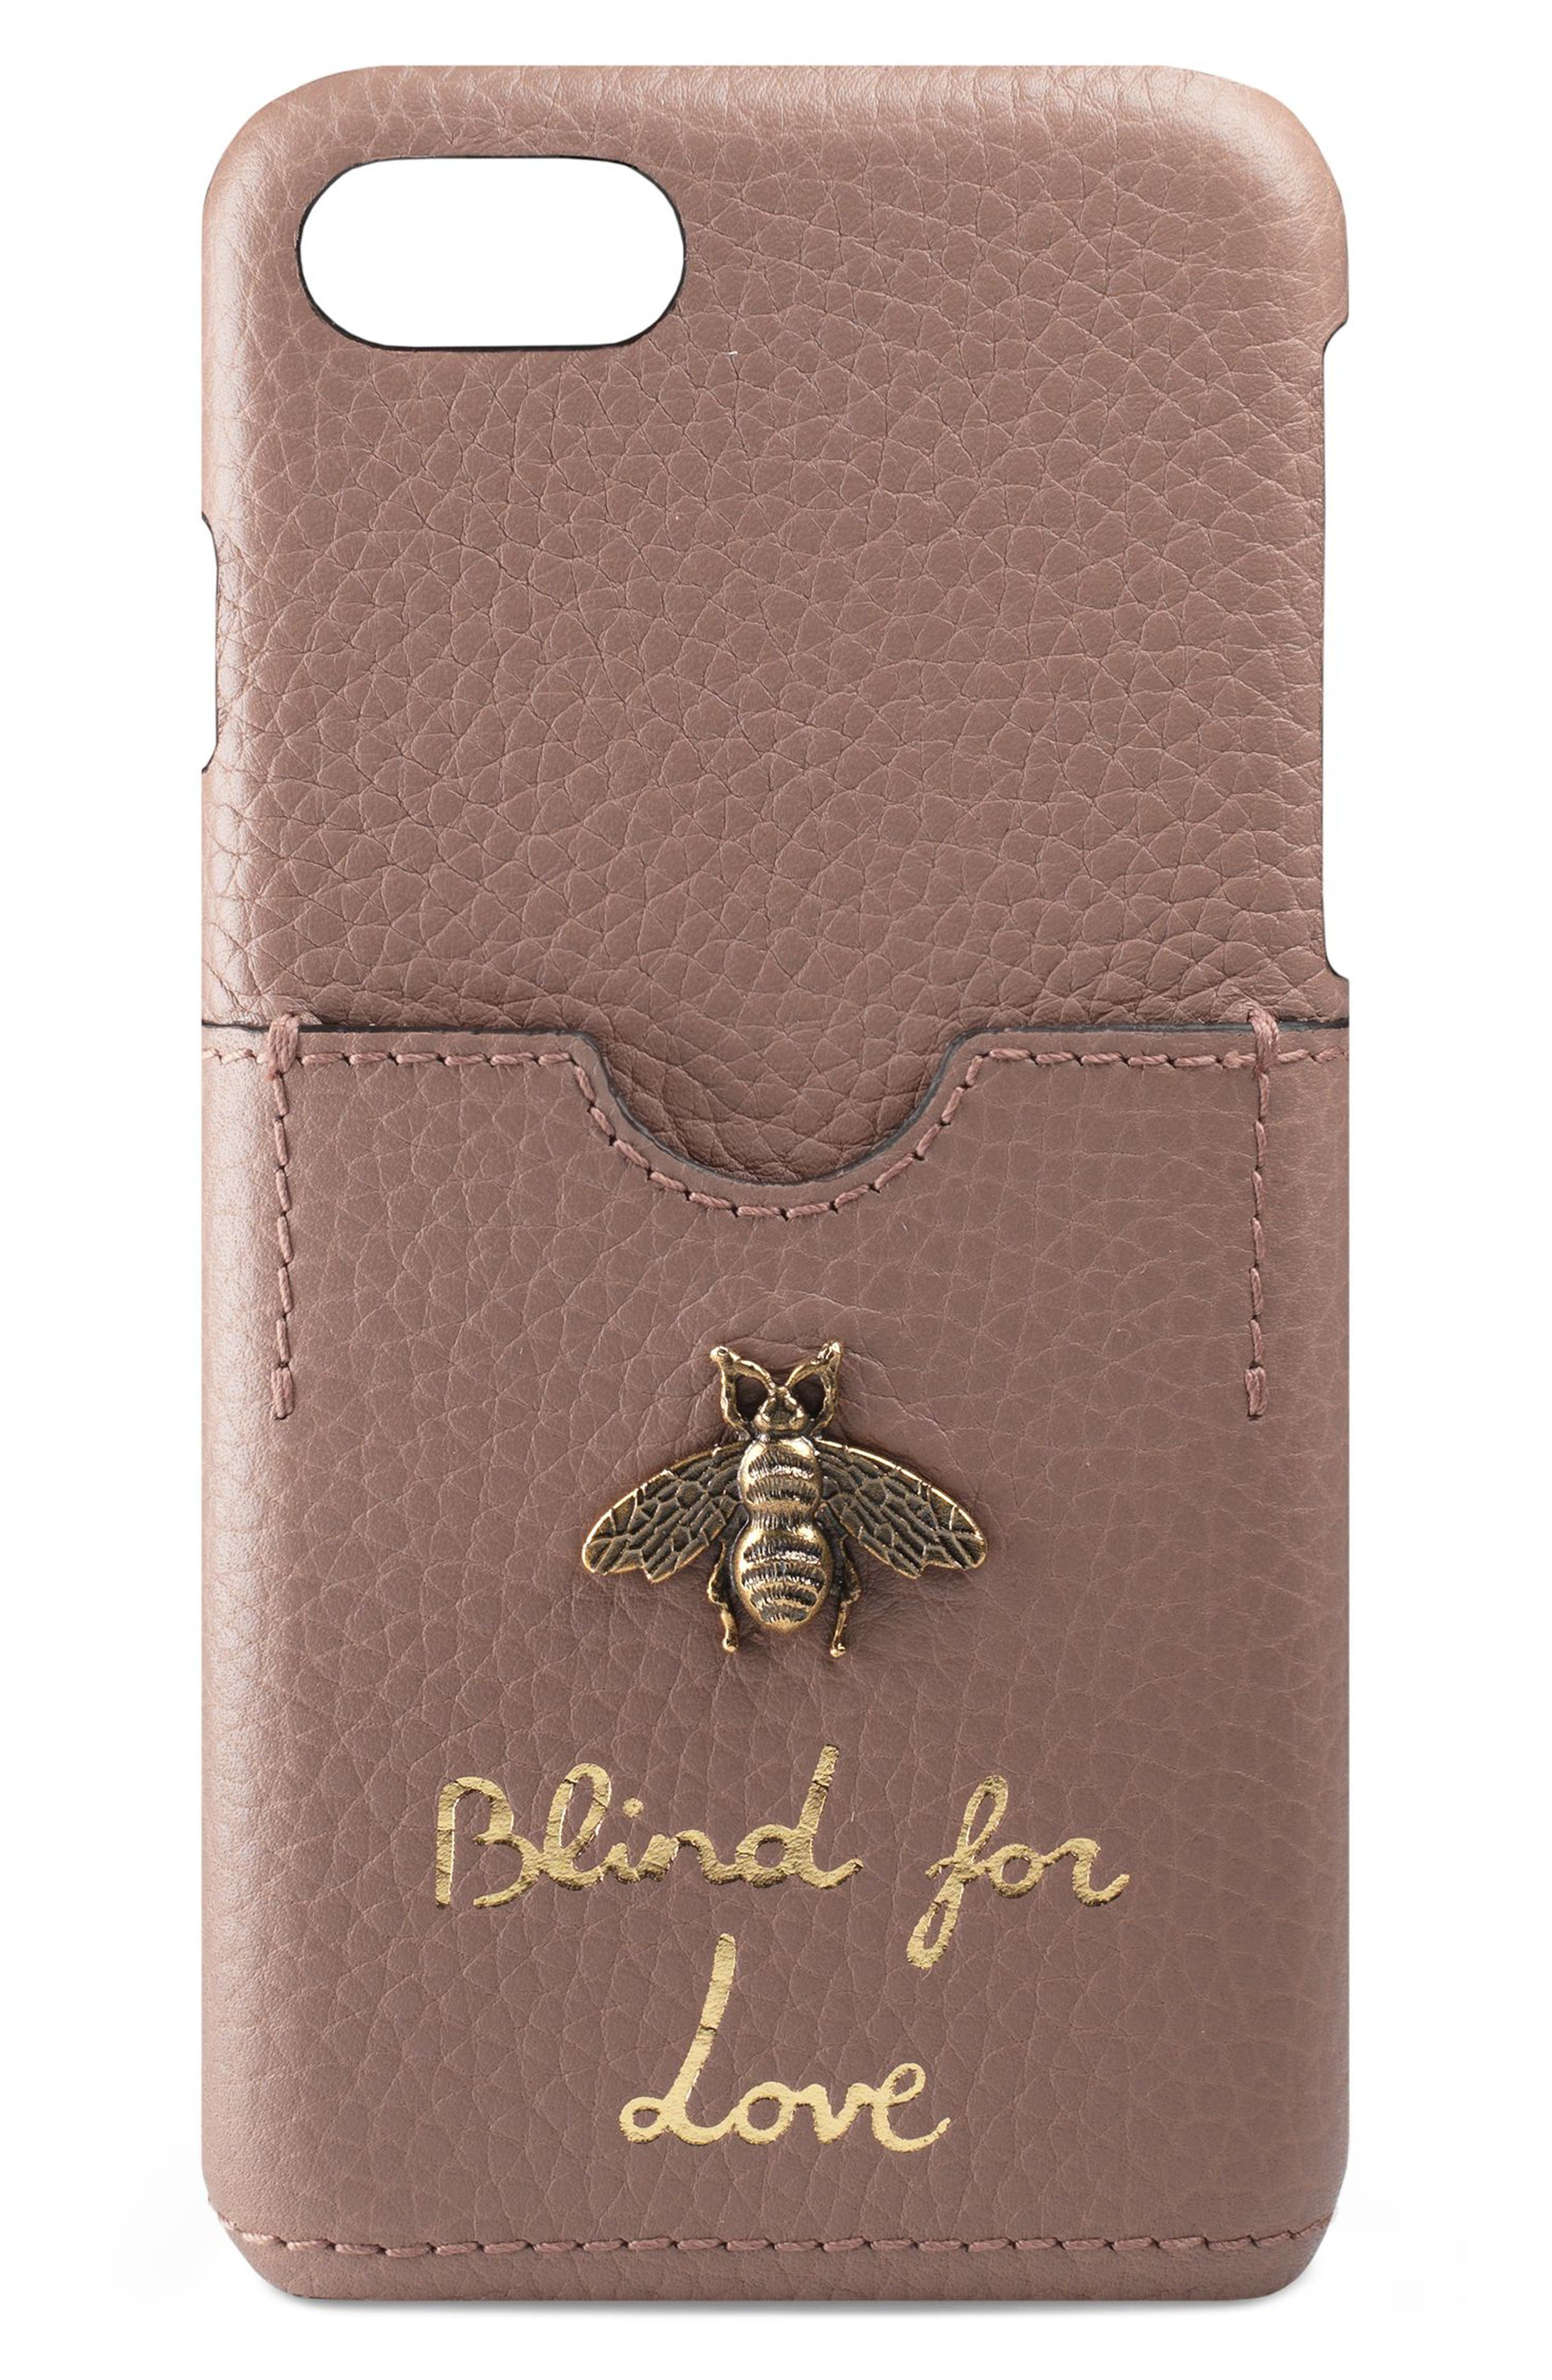 Alternate Image 1 Selected - Gucci Animalier Bee Leather iPhone 7 Case